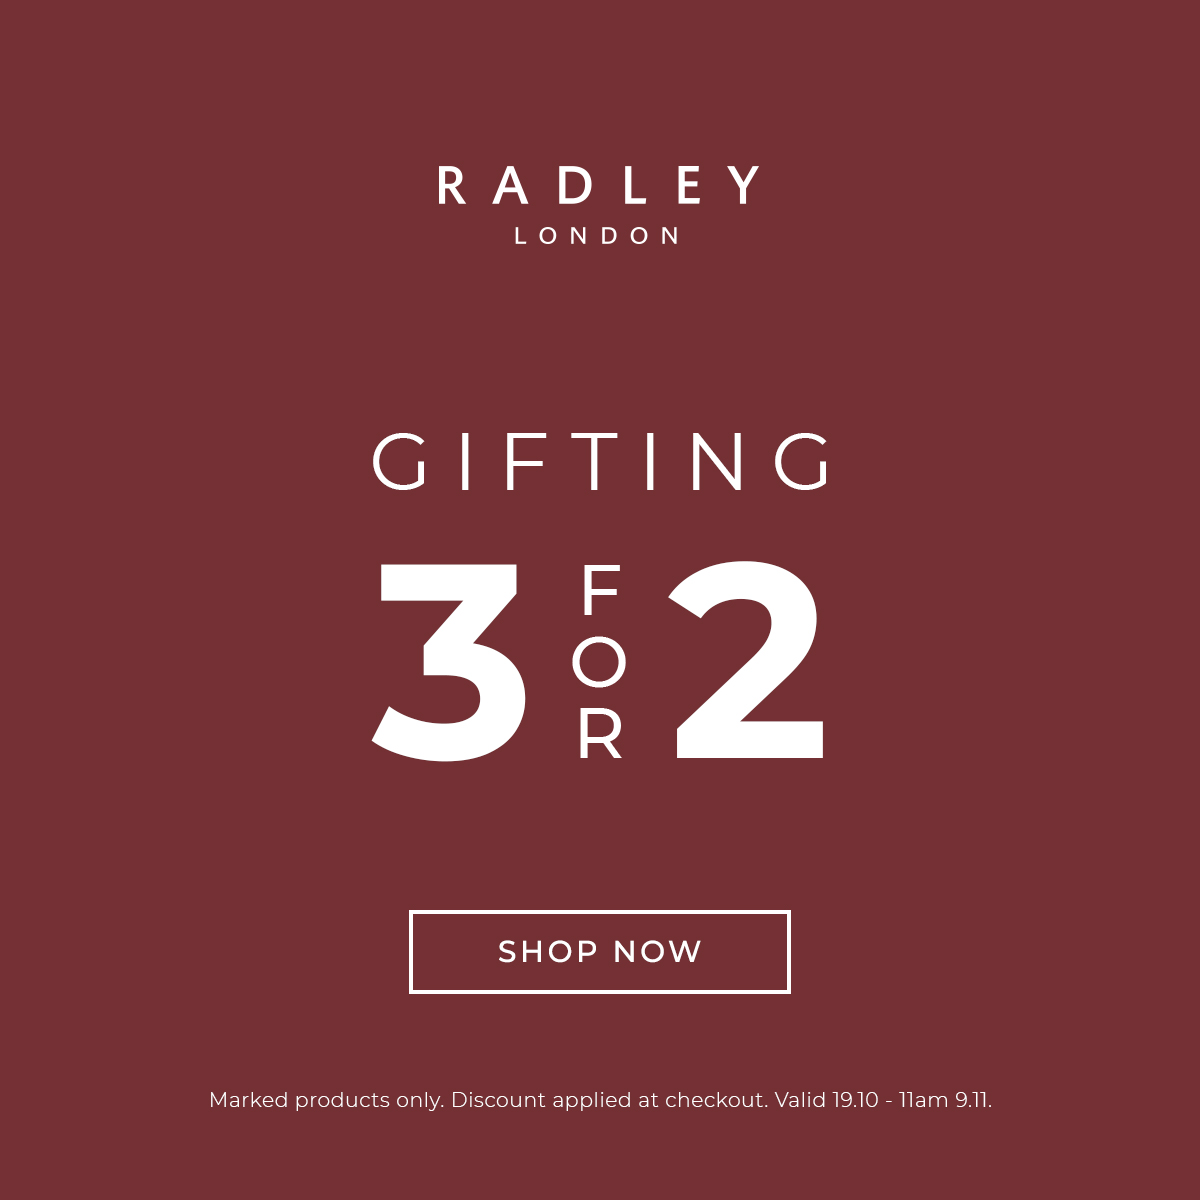 Radley London Christmas Gifts